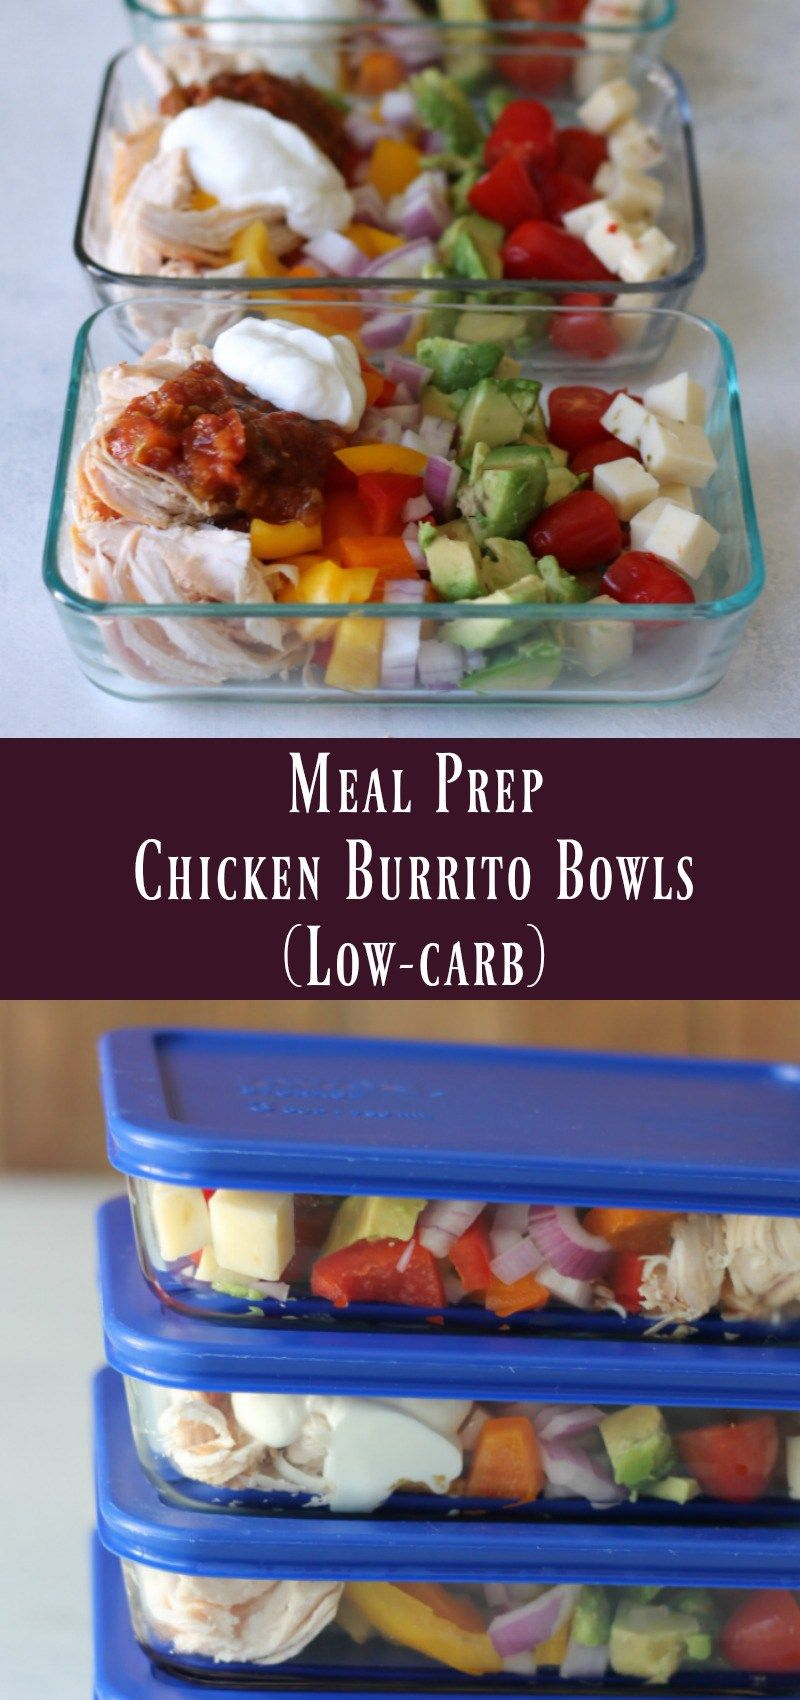 Meal Prep Low Carb Chicken Burrito Bowls Recipe Chicken Meal